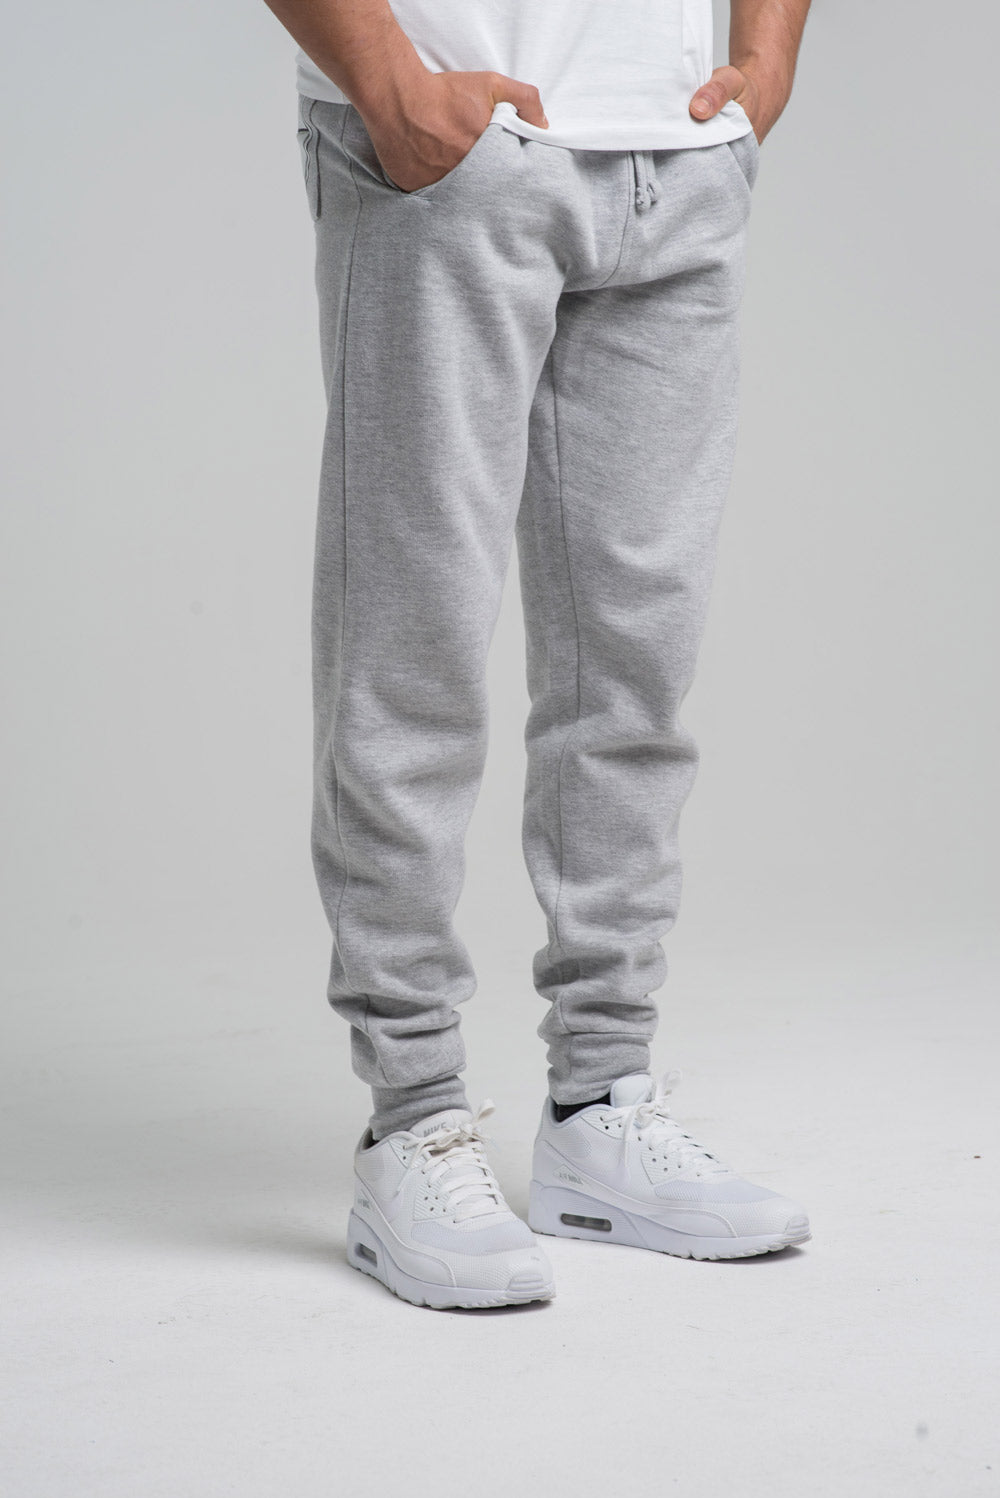 Grey Flawnt Clothing Joggers Track Pants